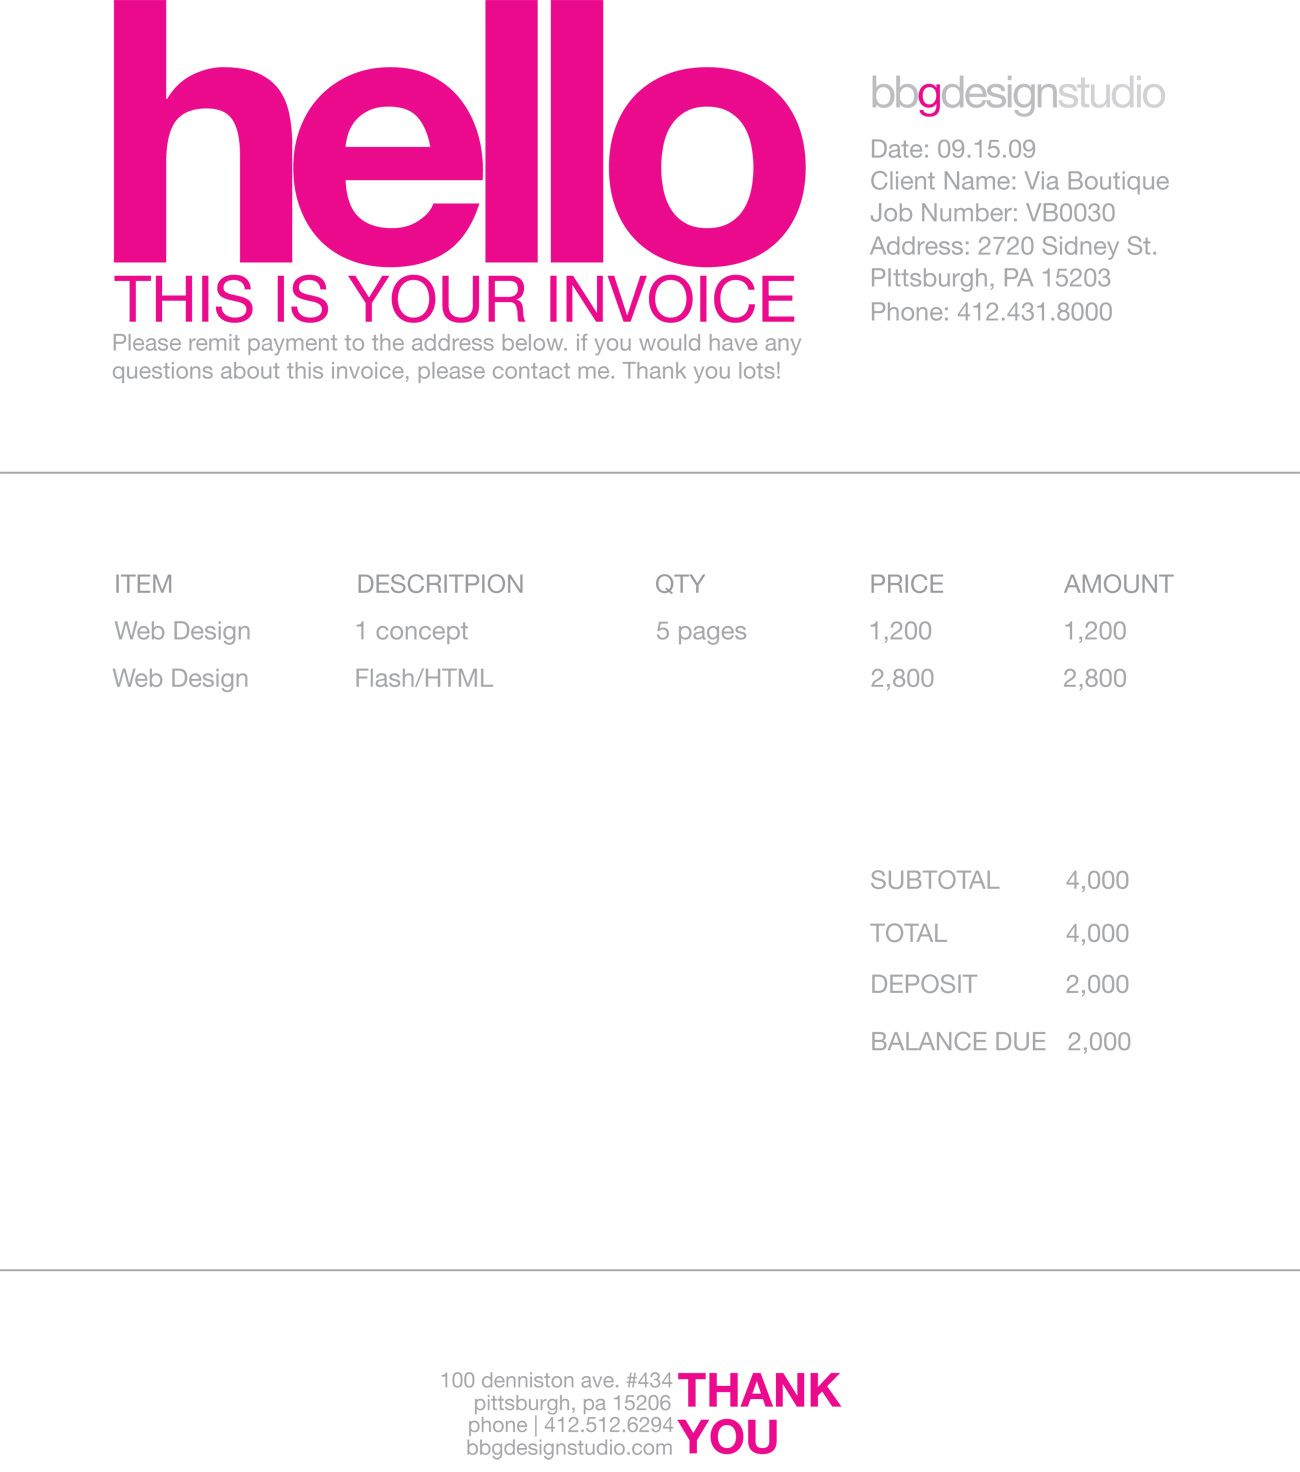 Aaaaeroincus  Pretty  Images About Invoice Design On Pinterest With Interesting What Is Invoice Number Besides How To Make An Invoice In Word Furthermore Printable Invoice Template With Cool Invoicing Software For Mac Also Free Invoice Online In Addition Create An Invoice Online And Professional Invoice Template As Well As Invoice Def Additionally Free Online Invoices From Pinterestcom With Aaaaeroincus  Interesting  Images About Invoice Design On Pinterest With Cool What Is Invoice Number Besides How To Make An Invoice In Word Furthermore Printable Invoice Template And Pretty Invoicing Software For Mac Also Free Invoice Online In Addition Create An Invoice Online From Pinterestcom